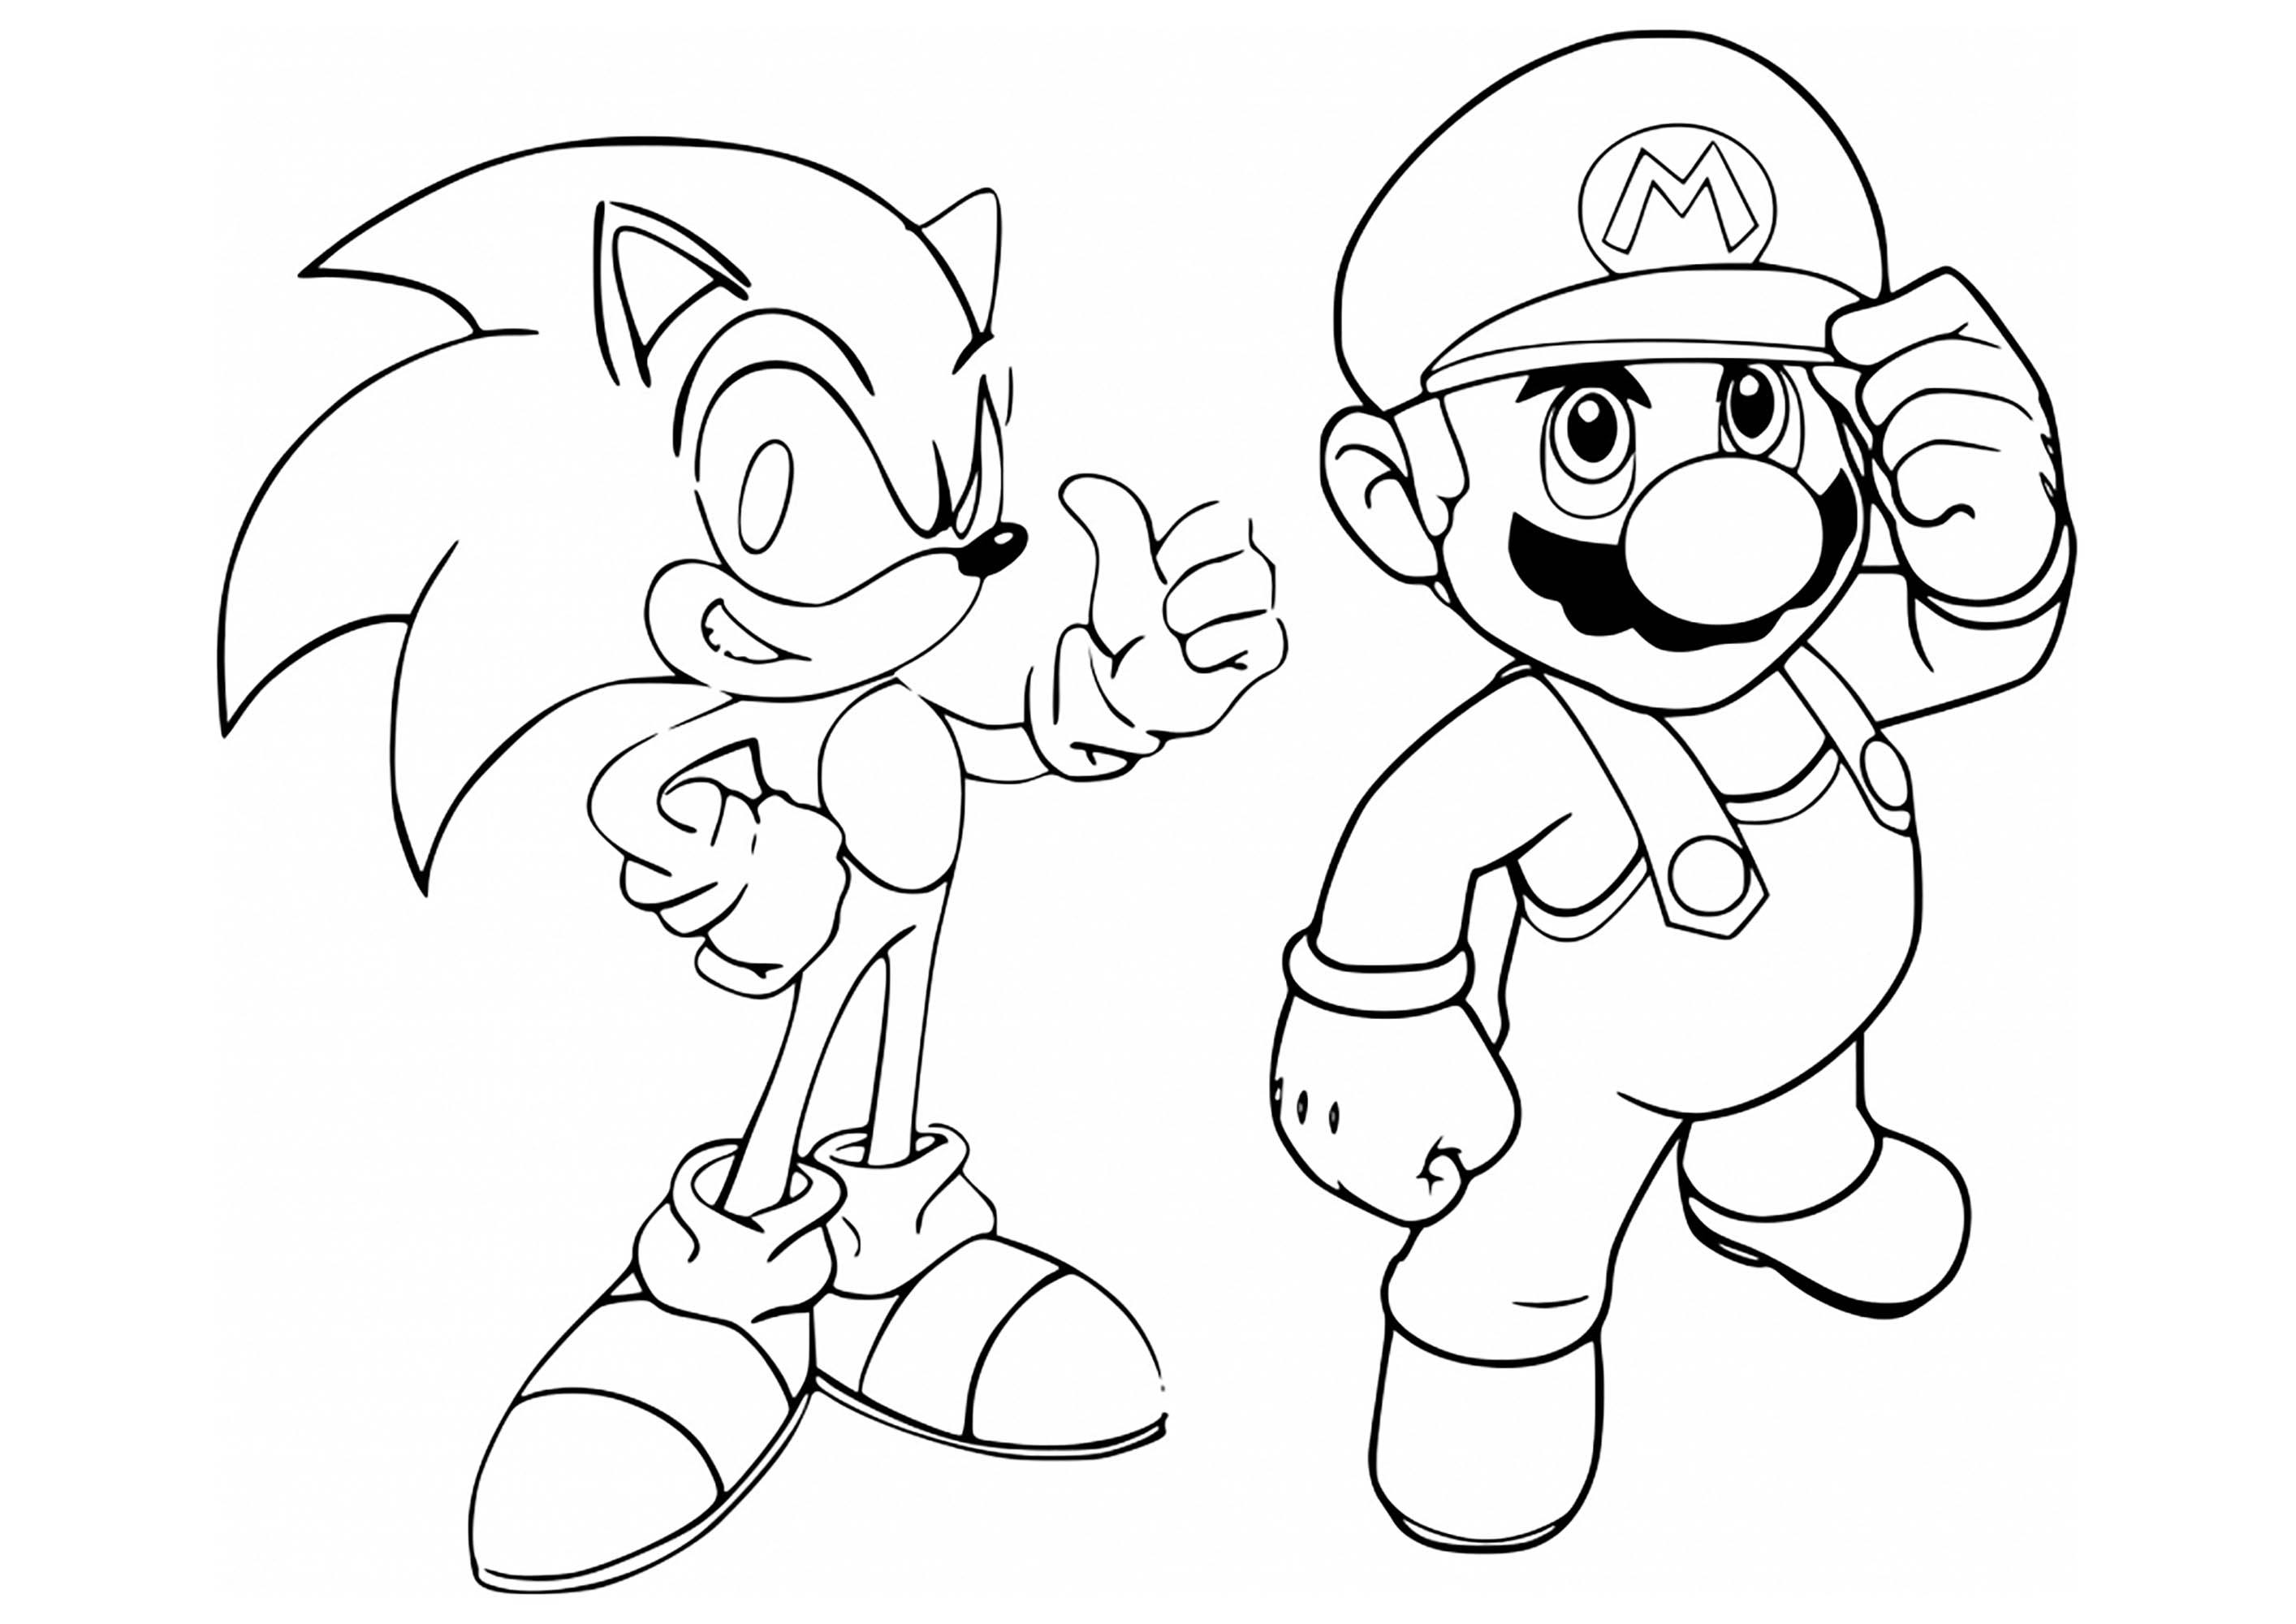 Mario & Sonic Coloring page - Mario Bros Kids Coloring Pages